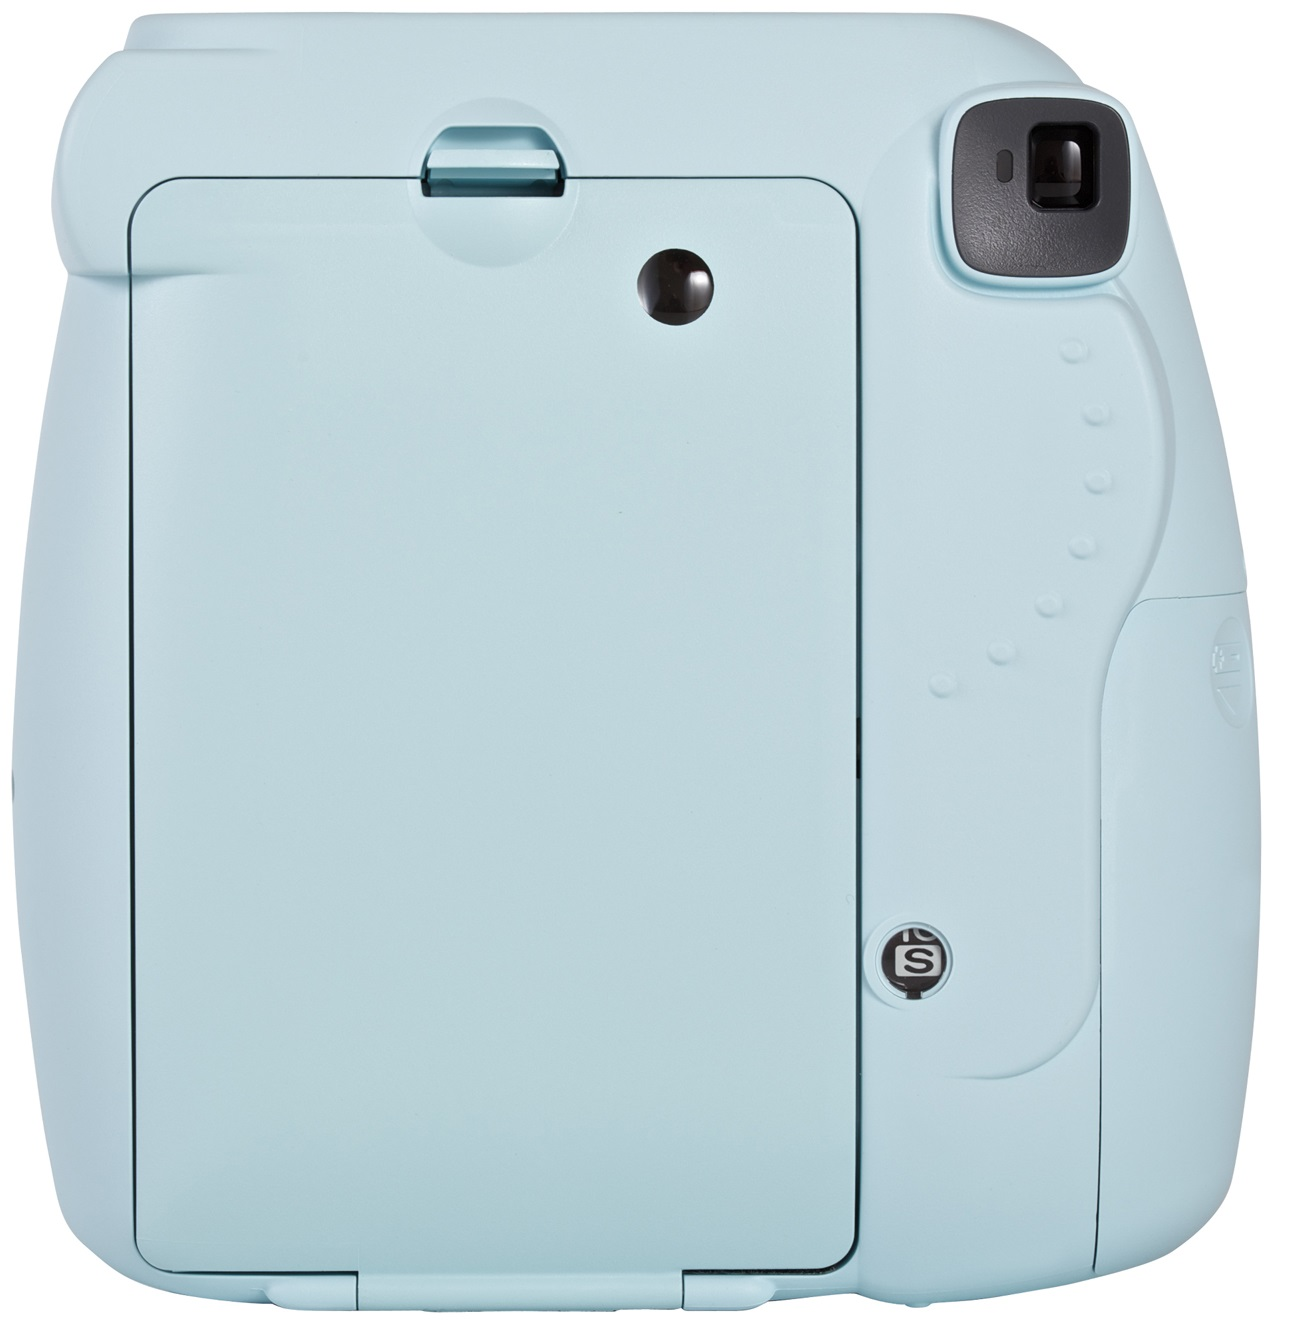 Fujifilm Instax Mini 8 Blue Instant Camera inc 10 Shots